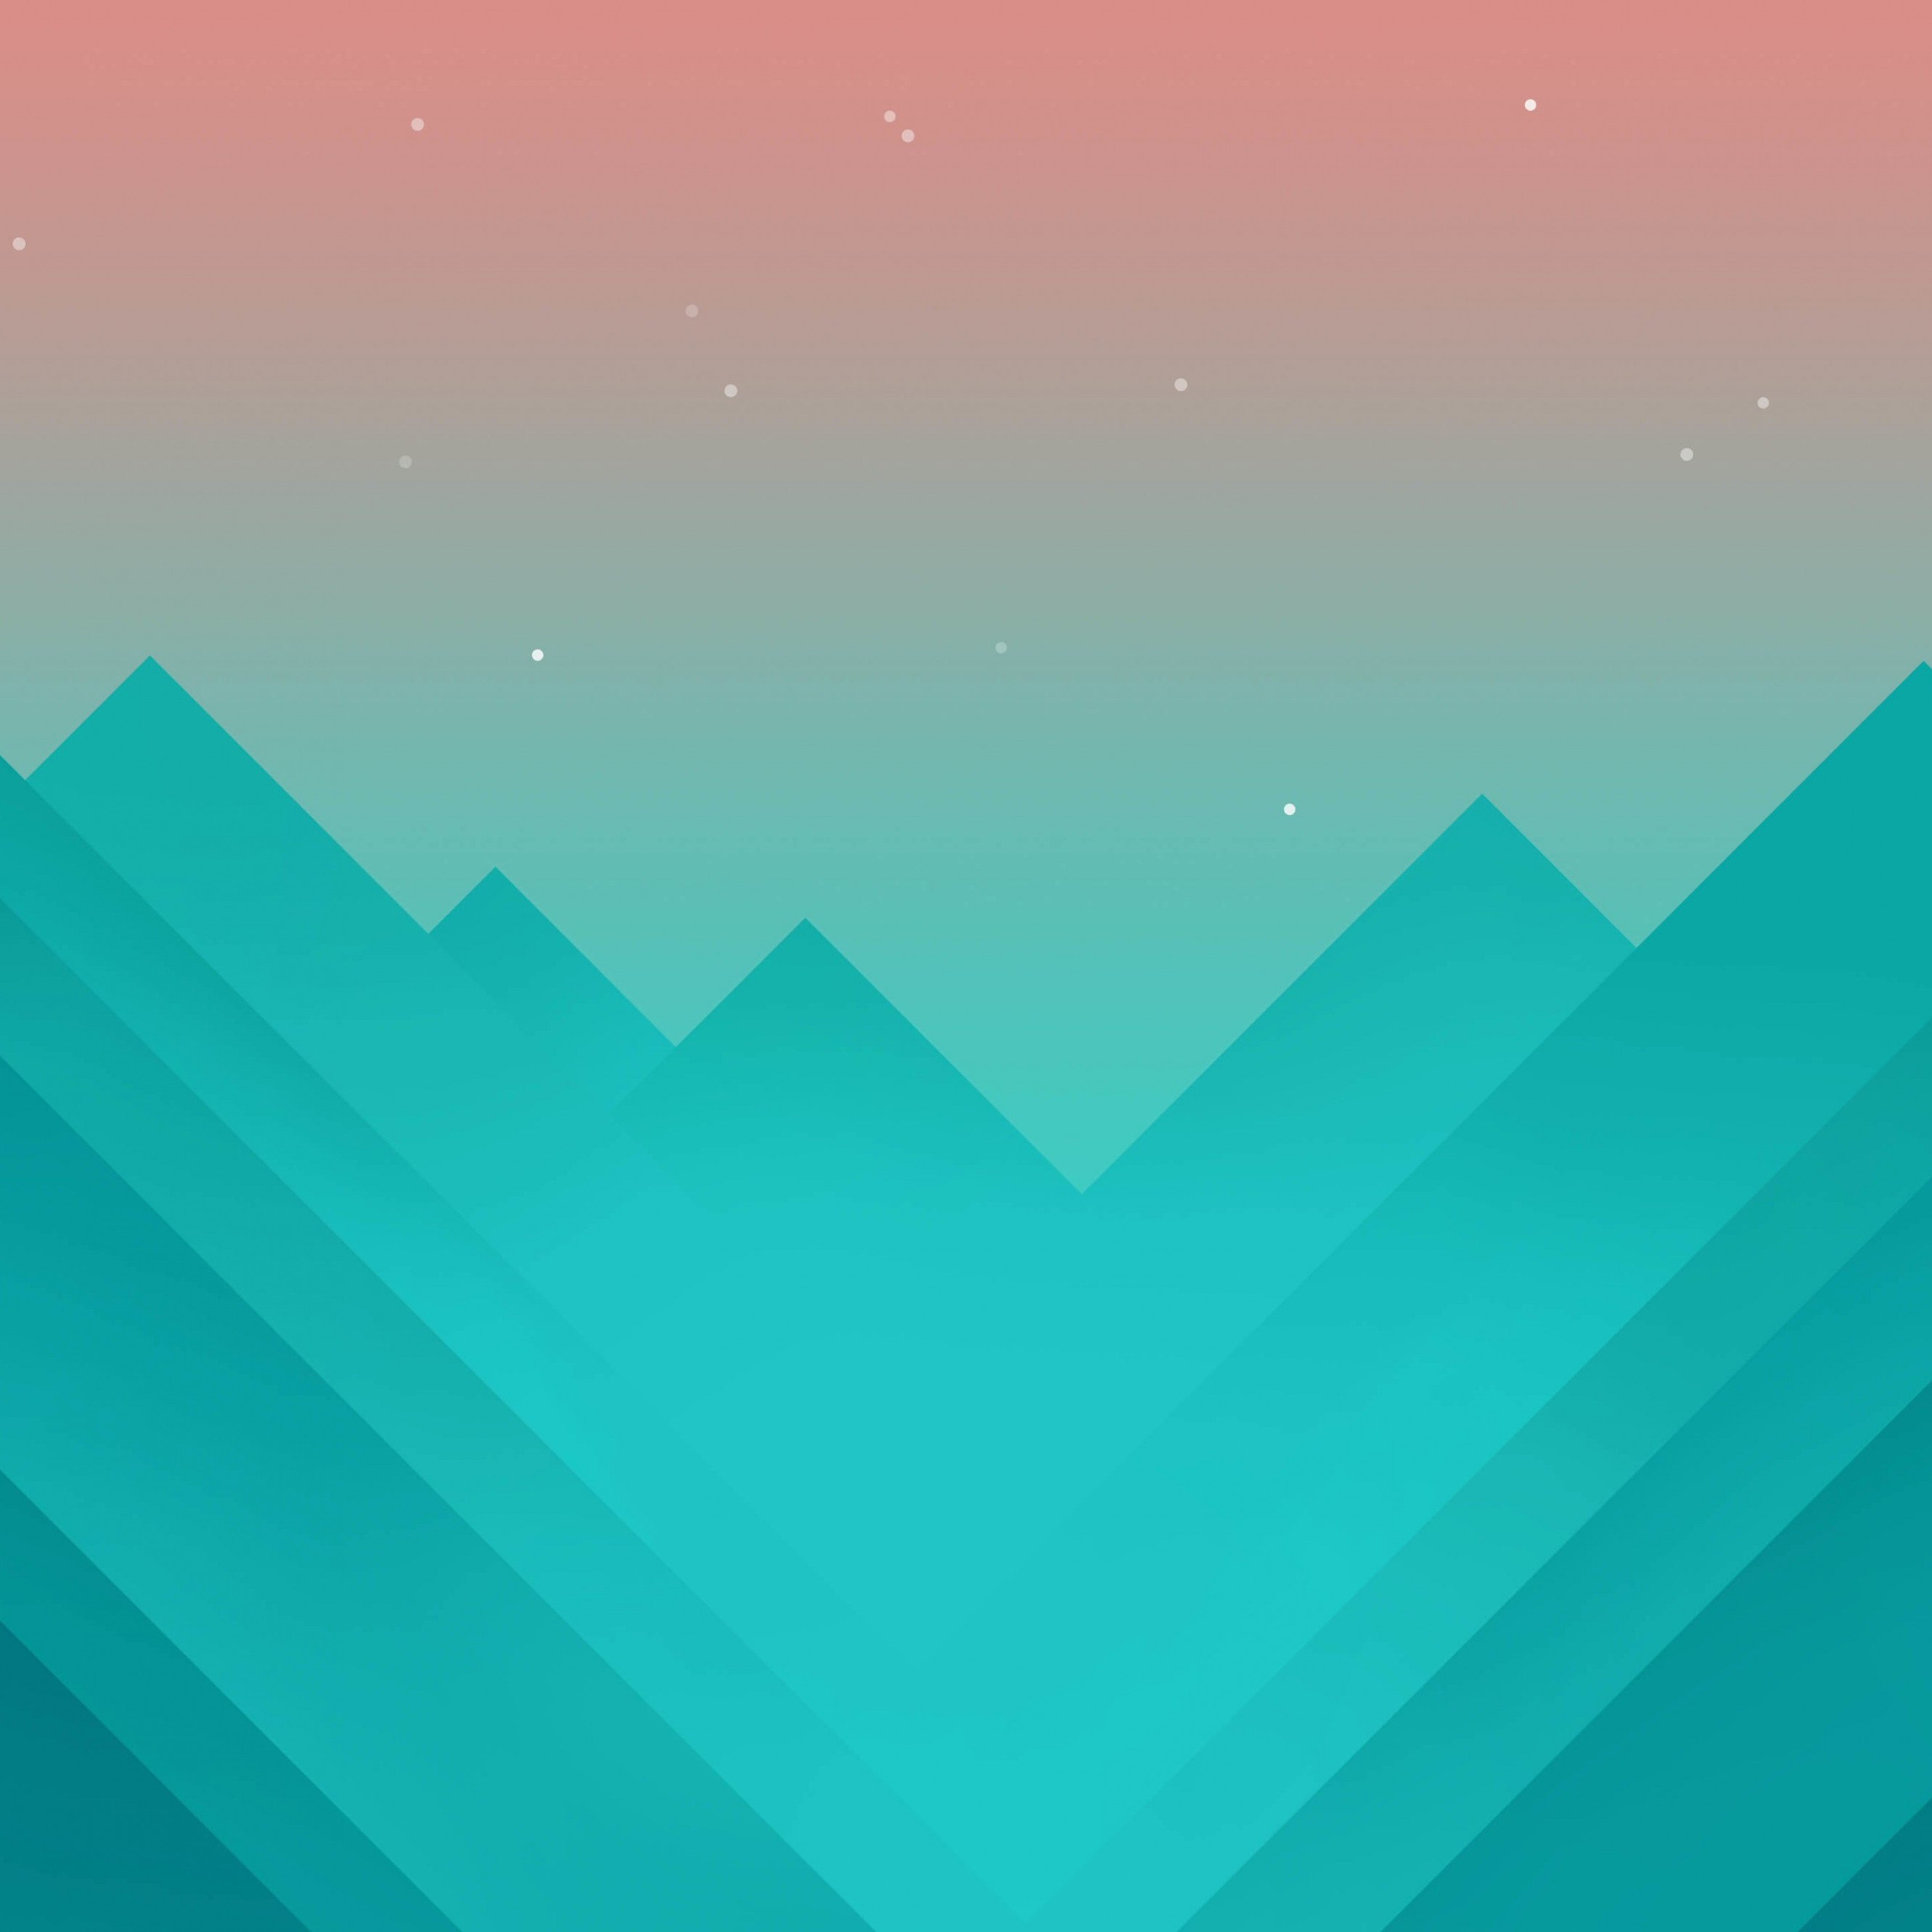 Monument Valley Wallpaper for Apple iPhone 6 Plus